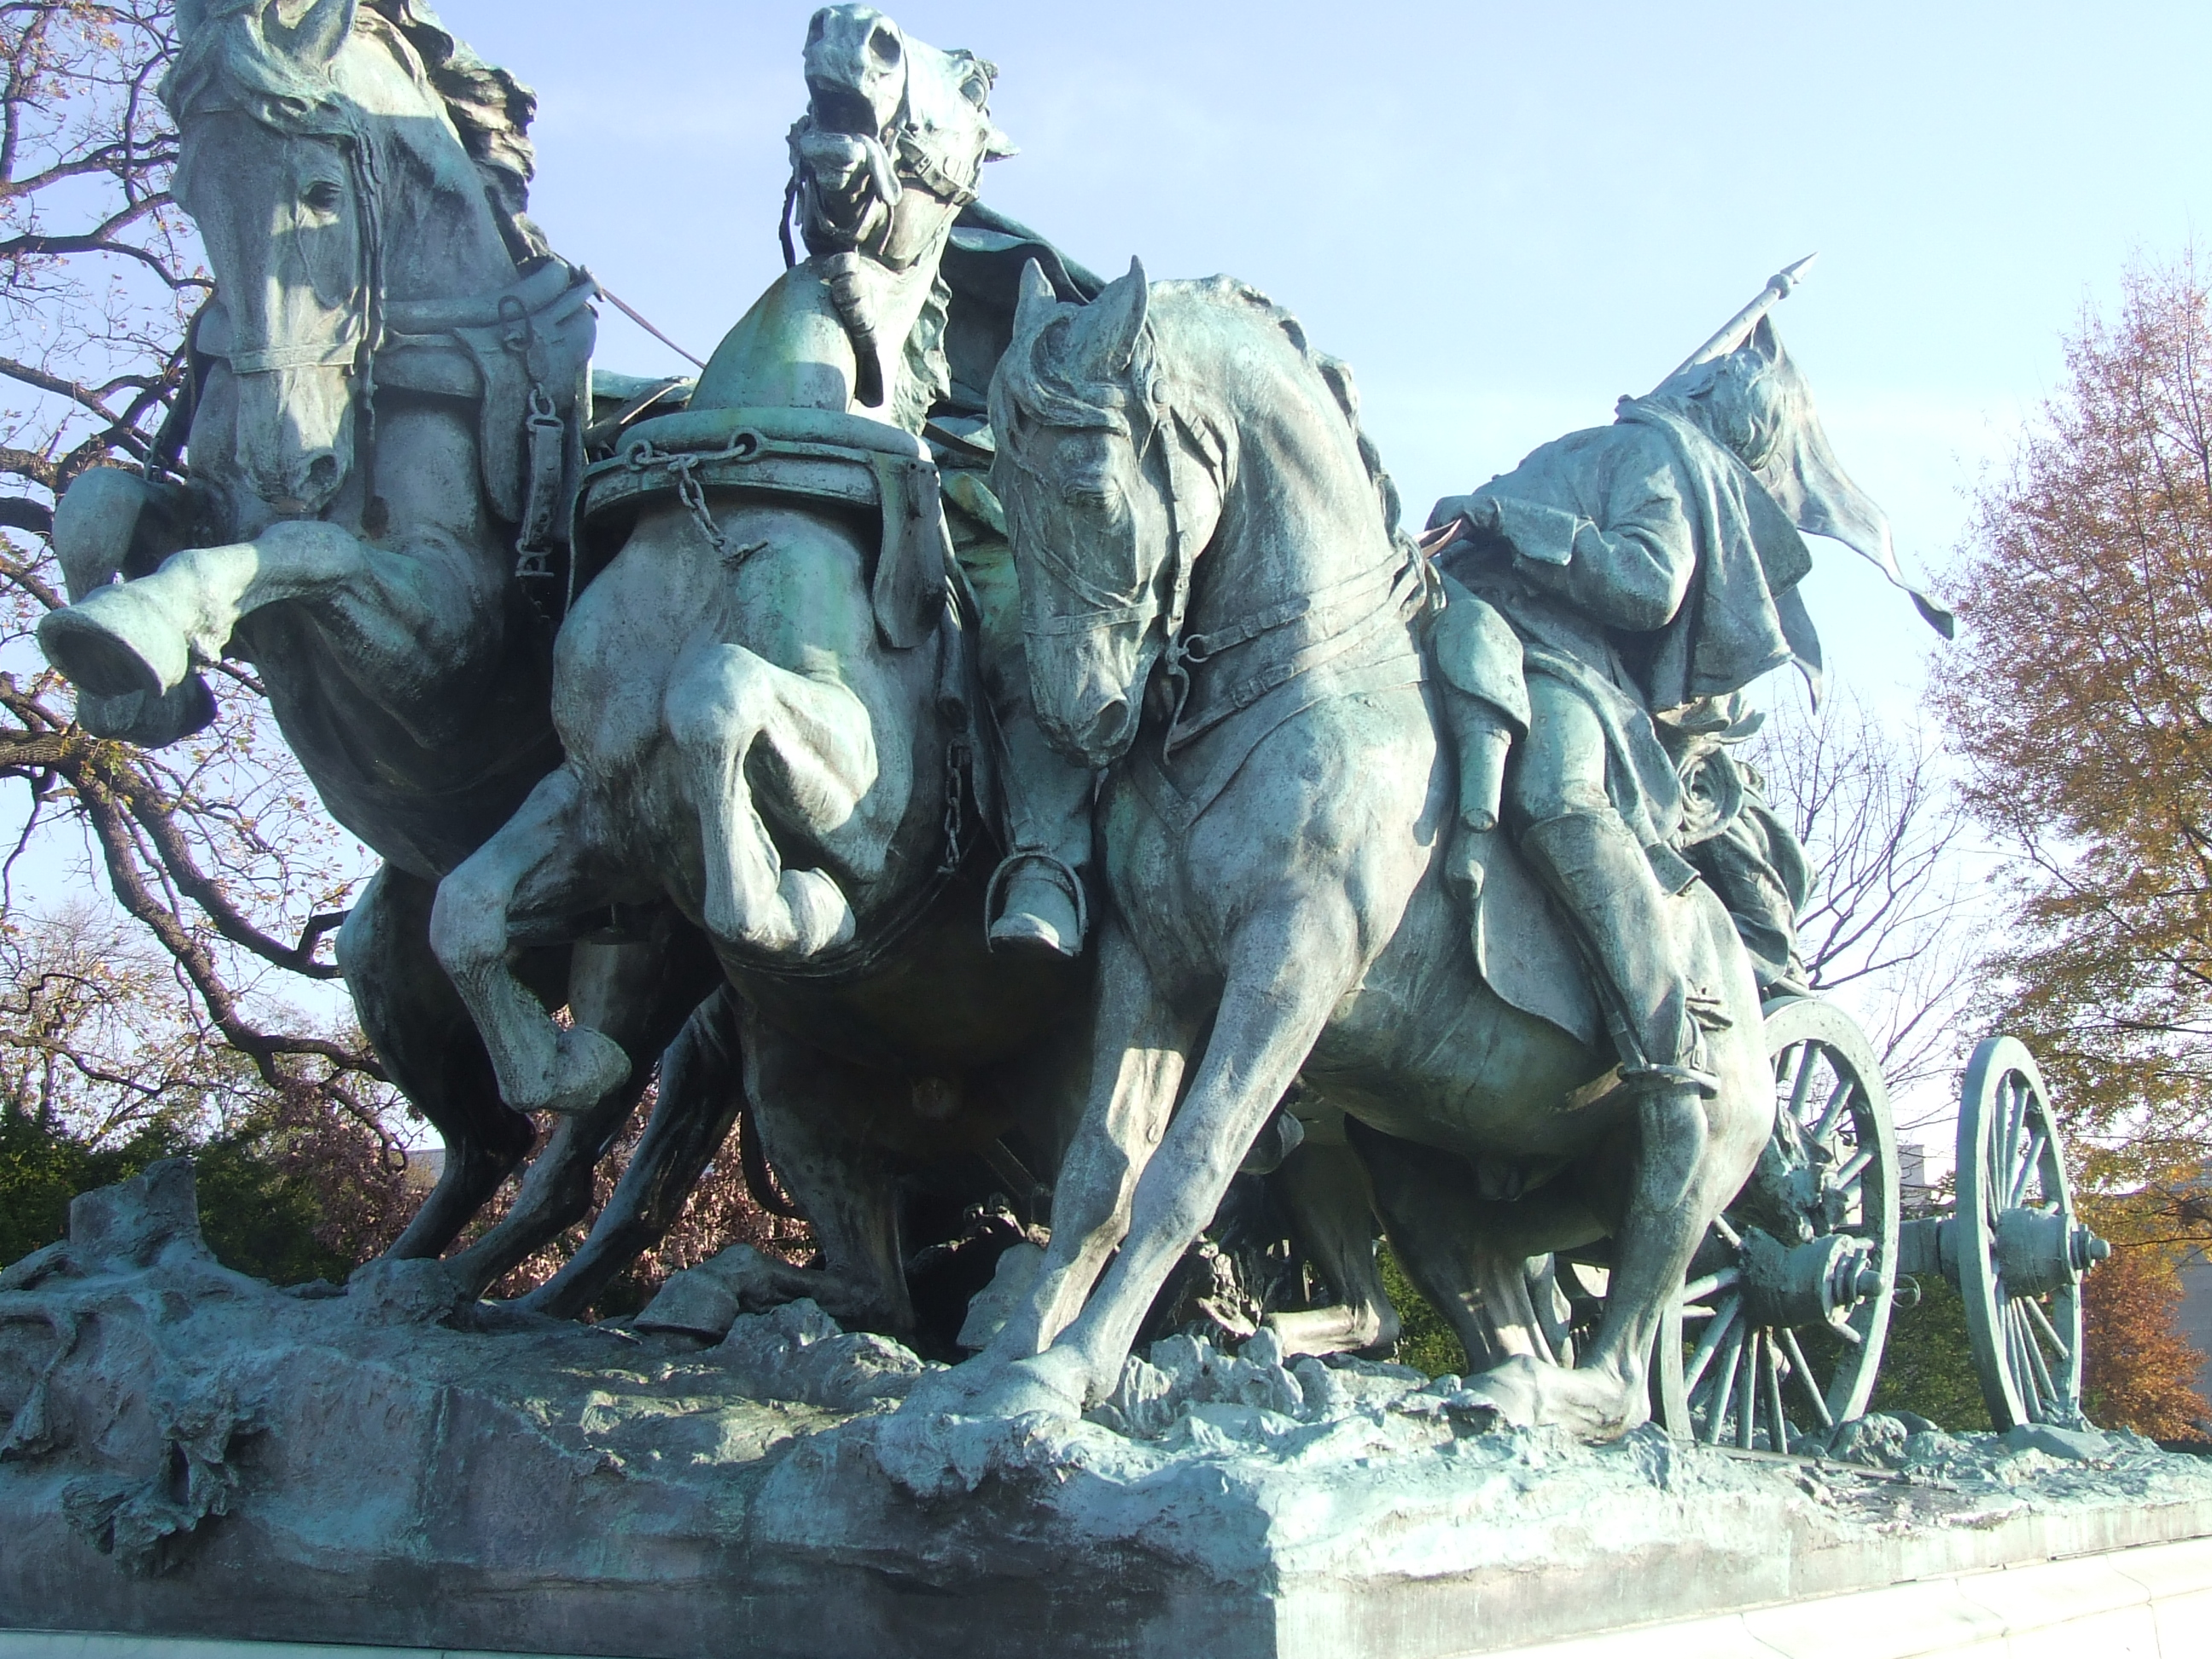 Grant Memorial: The 'Ugly Betty' of U.S. Presidential Monuments ...